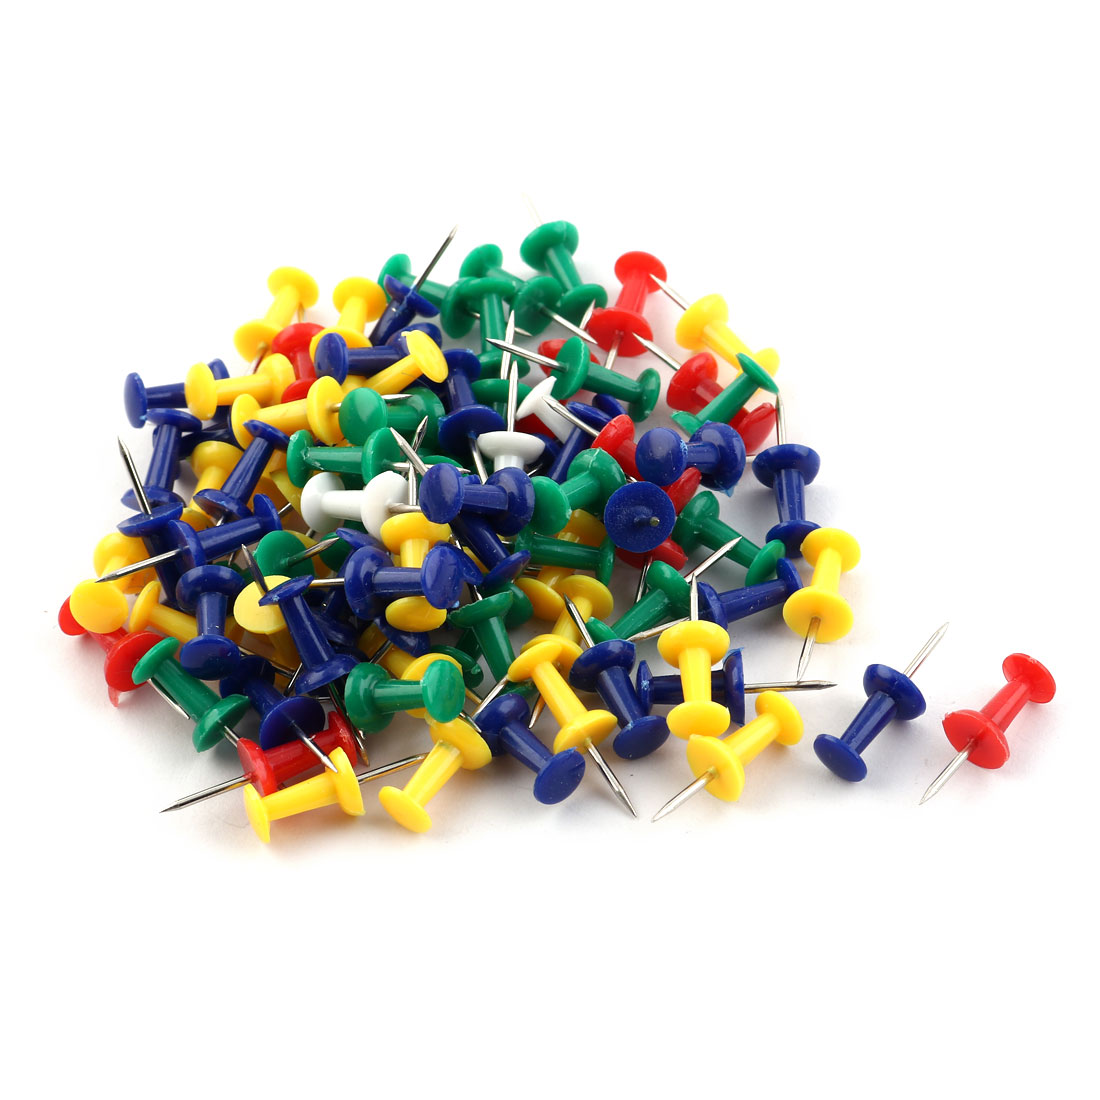 Office Universal 100 Pieces Colorful Push Pin Set